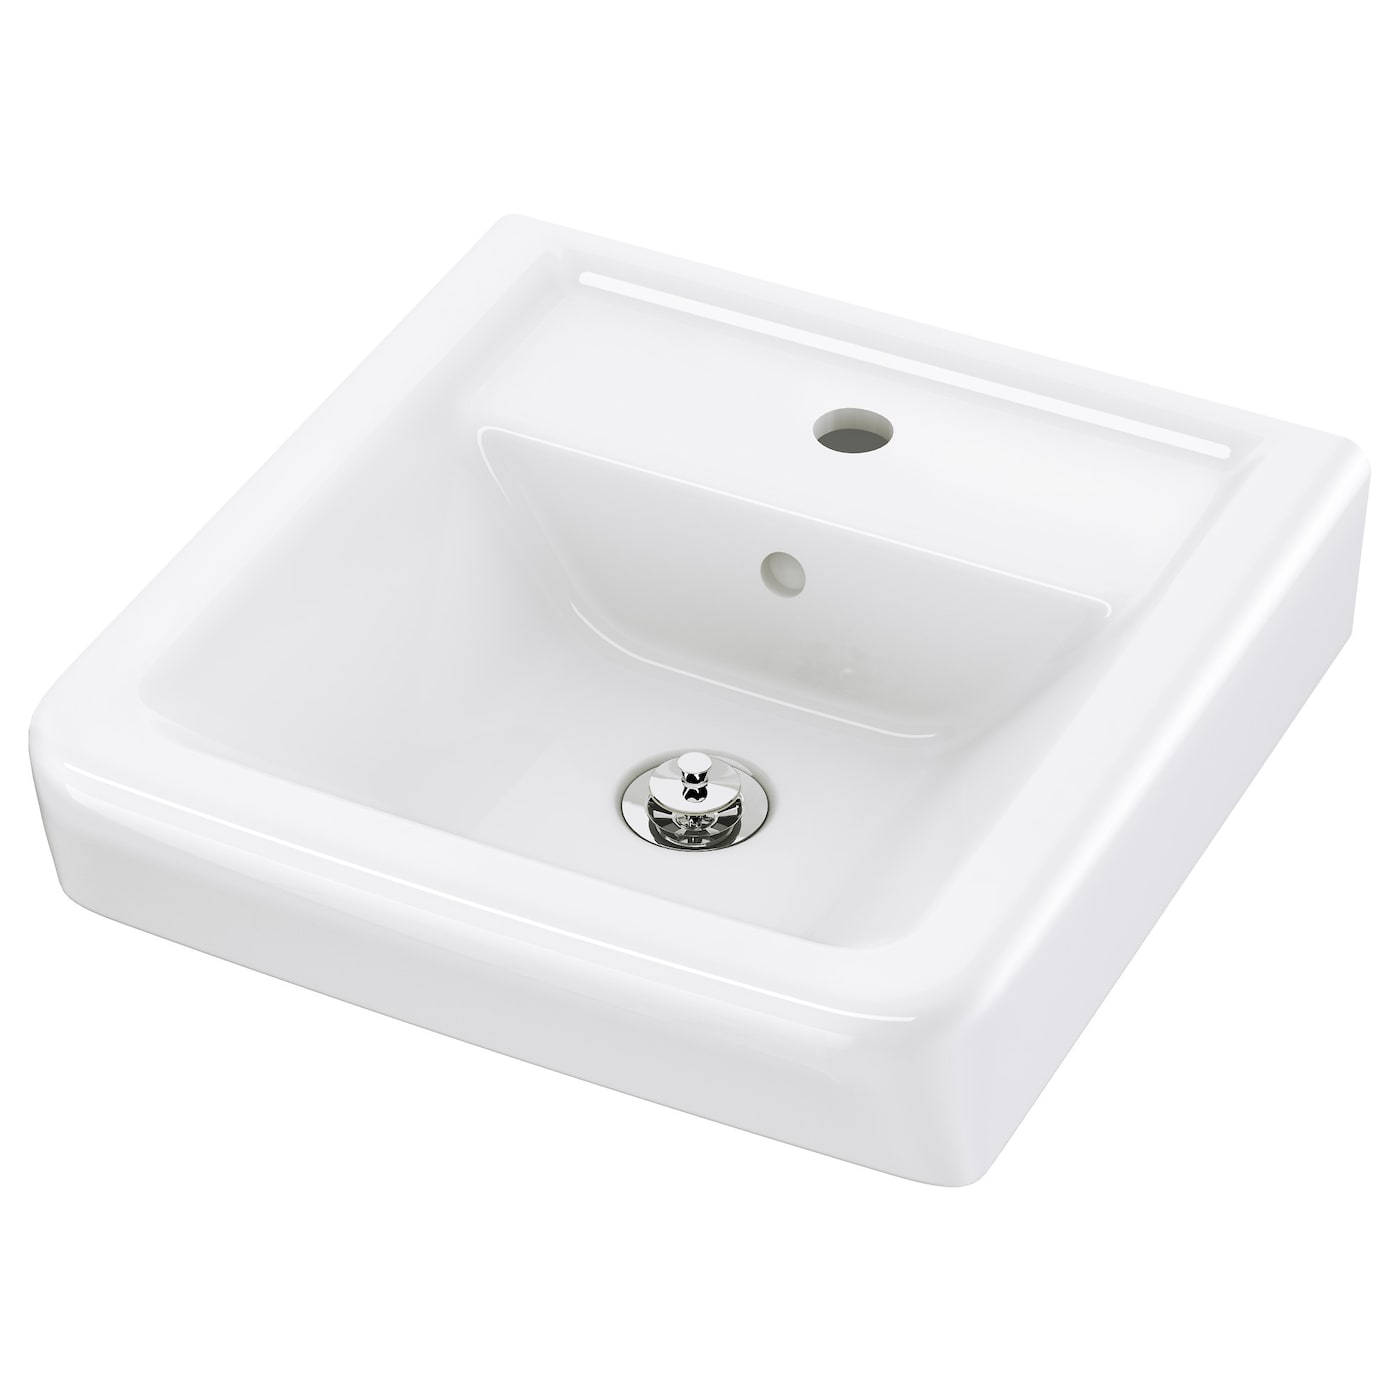 Bathroom sinks wash basins ikea for Lavabo noir salle de bain